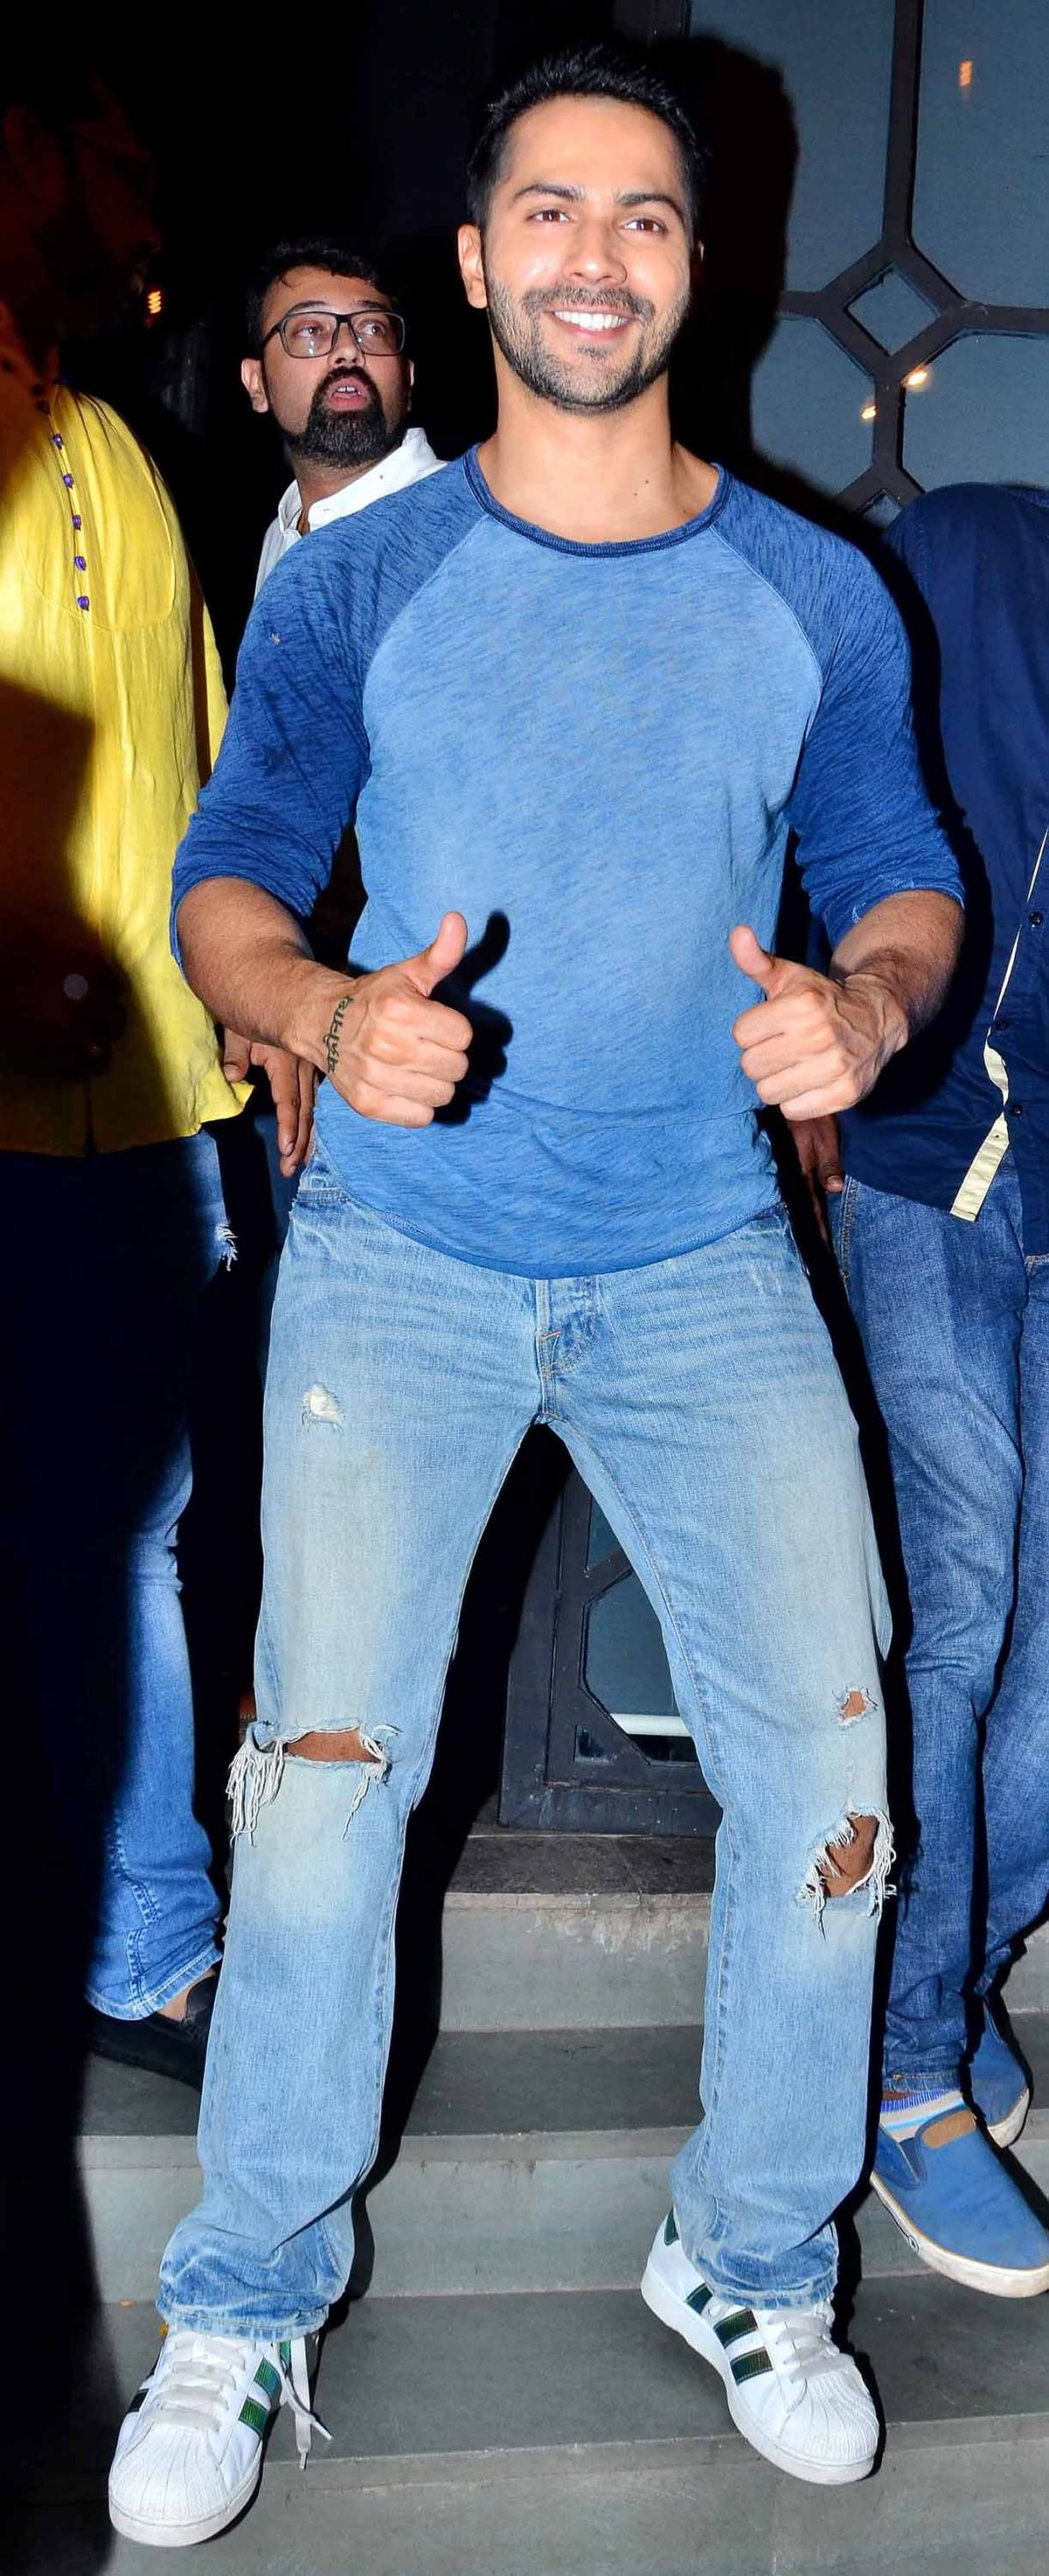 Varun Dhawan strikes a pose while arriving at the party. (Photo: Yogen Shah)